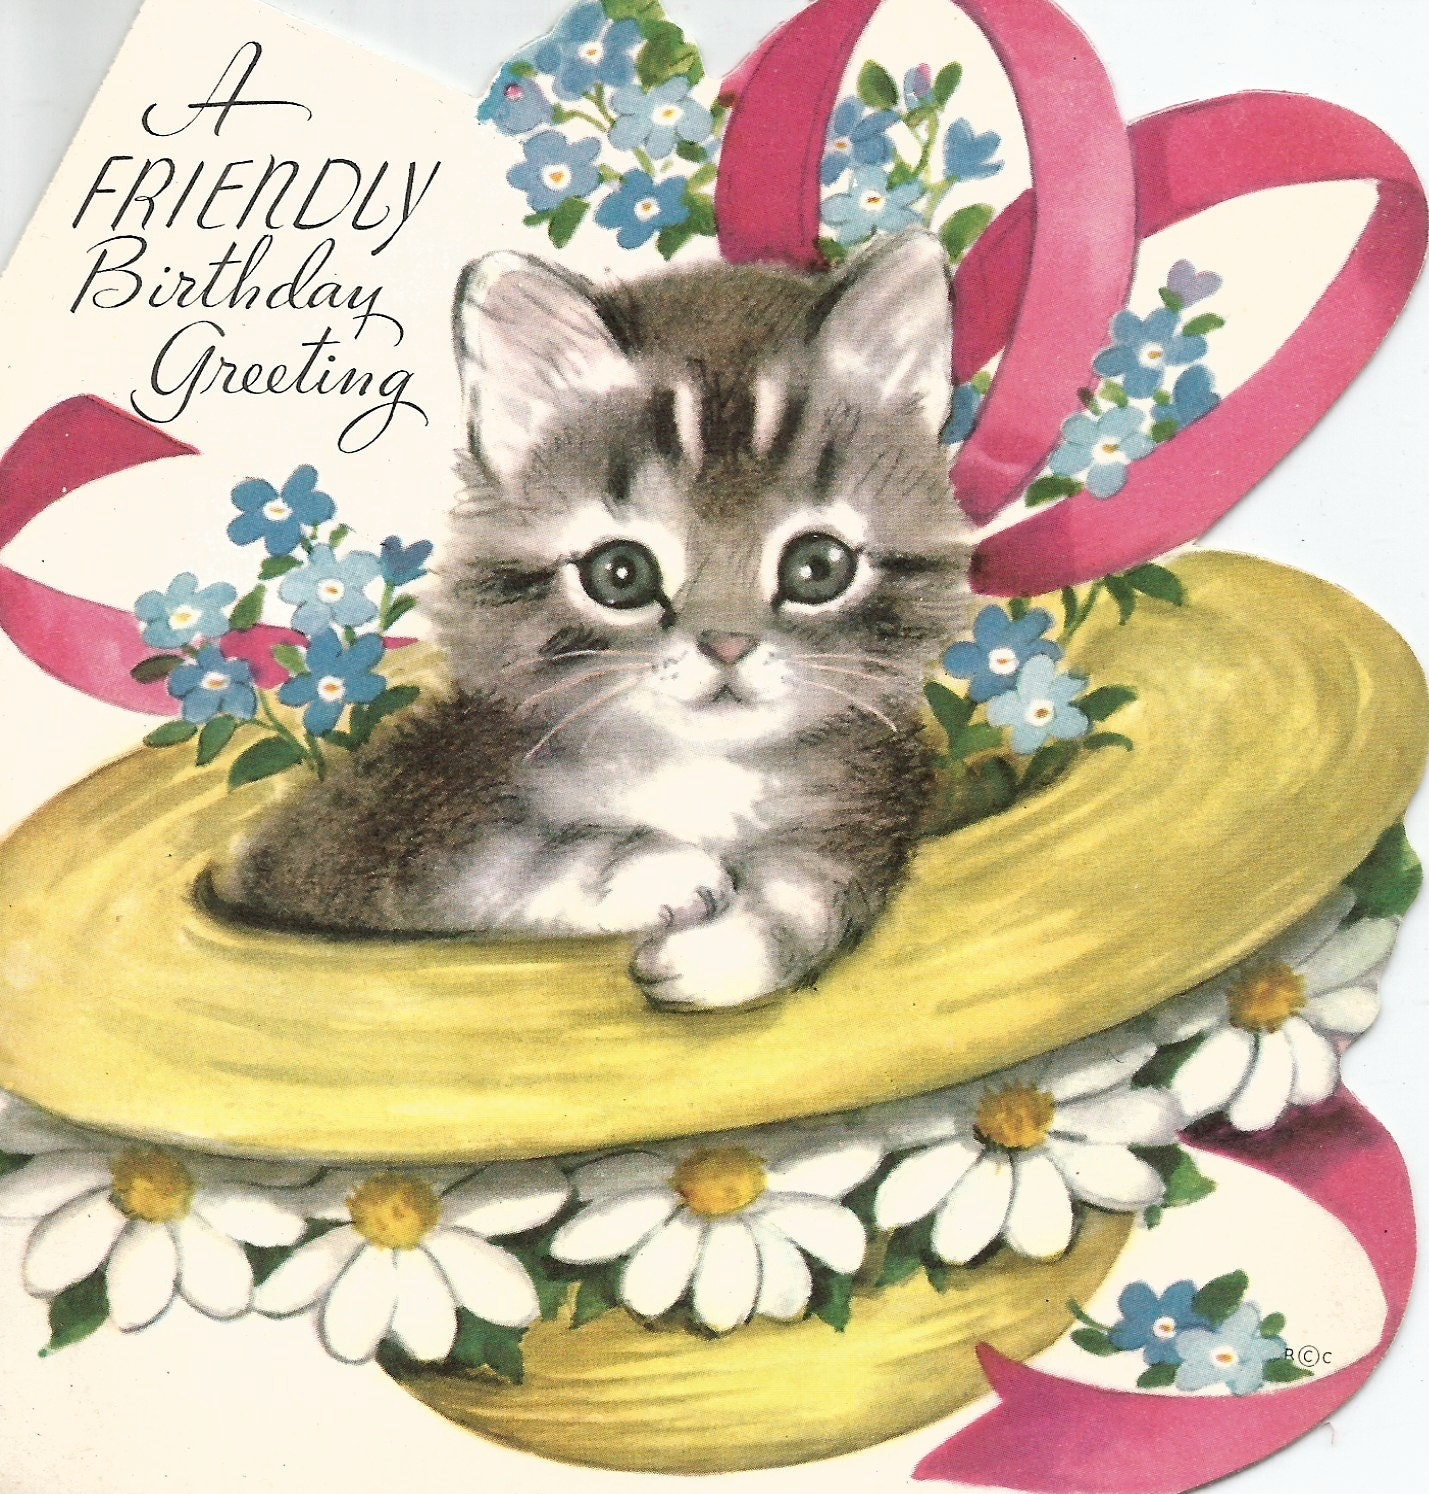 Vintage Retro Cat Kitten Straw Hat Birthday Card Digital Etsy